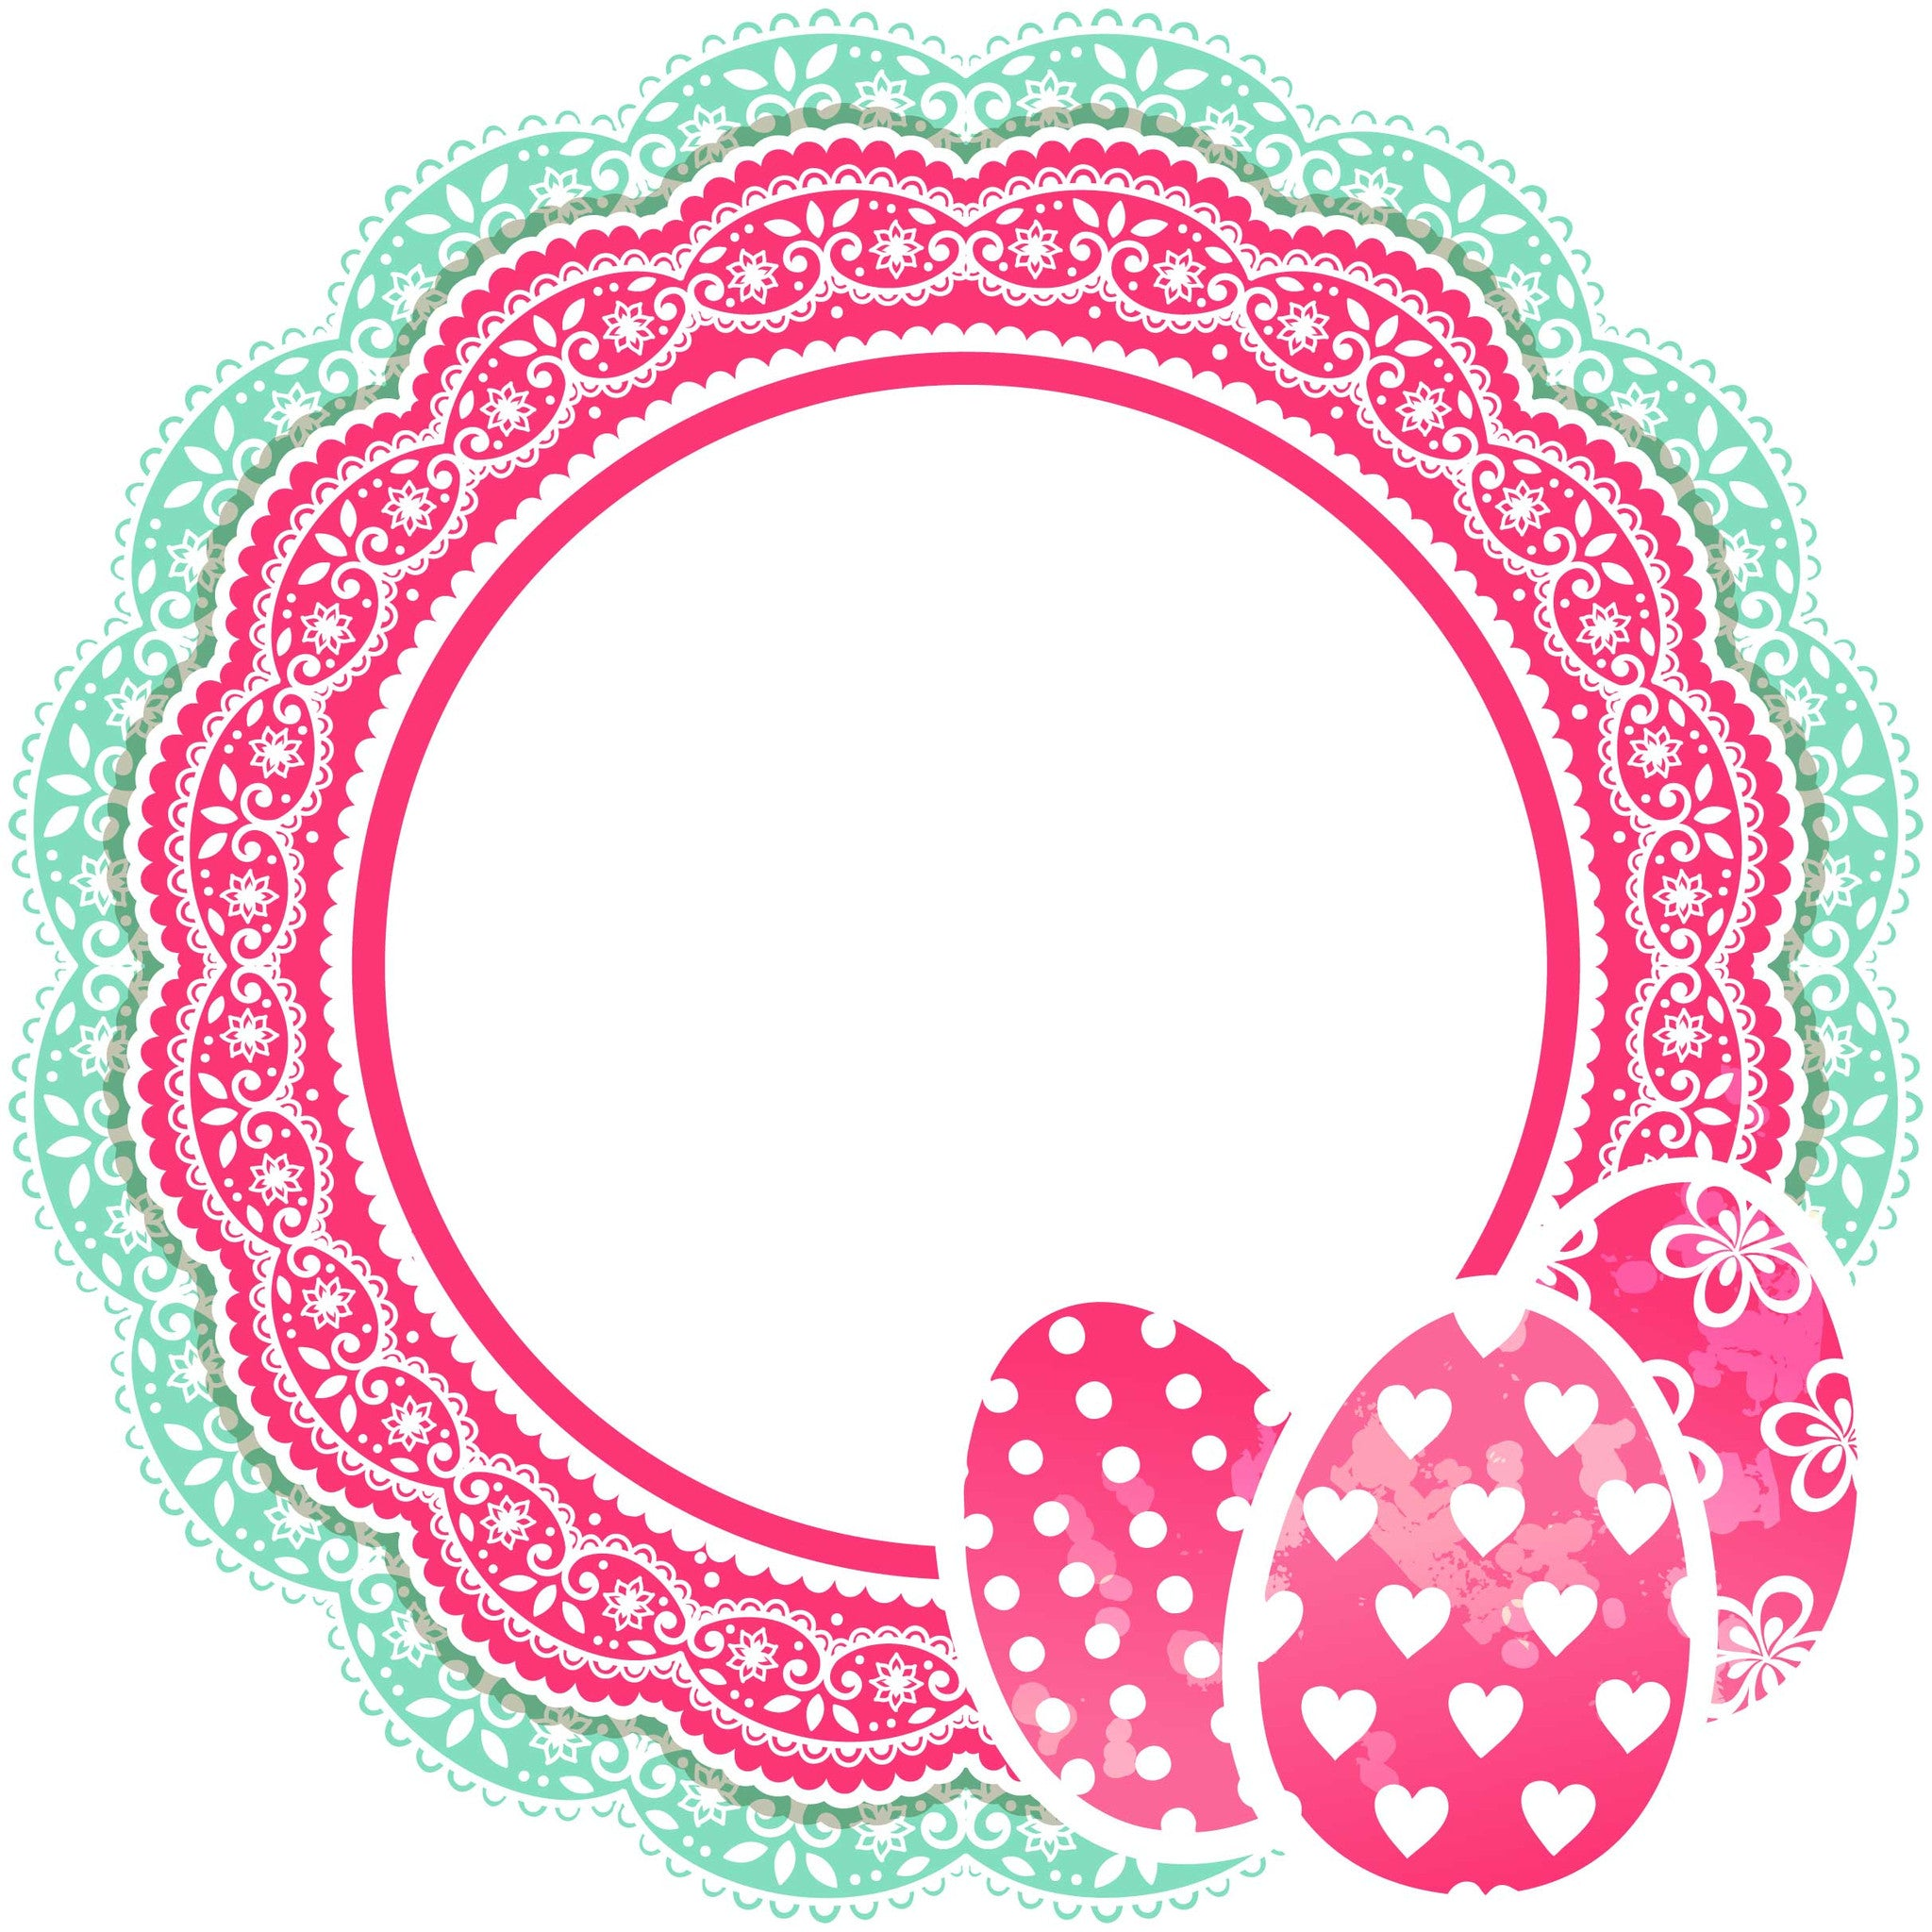 Lace Egg Monogram SVG Cut File